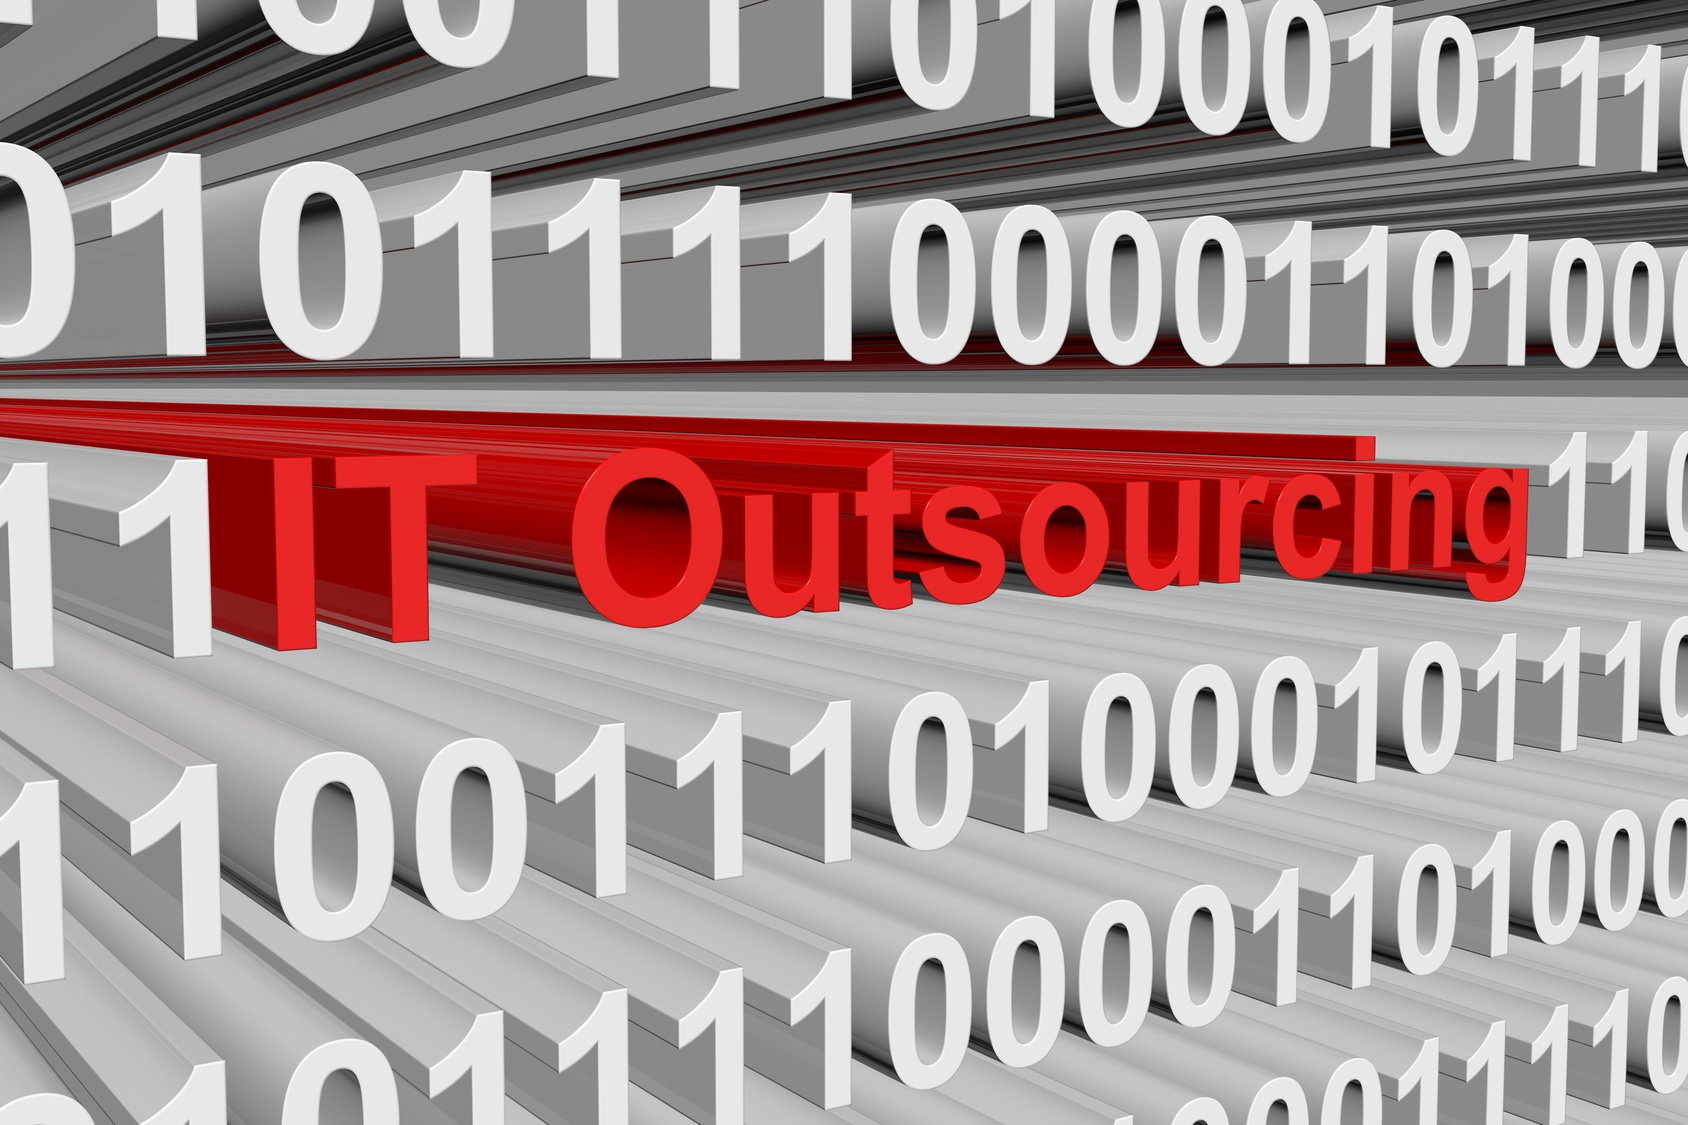 IT outsourcing is presented in the form of binary code